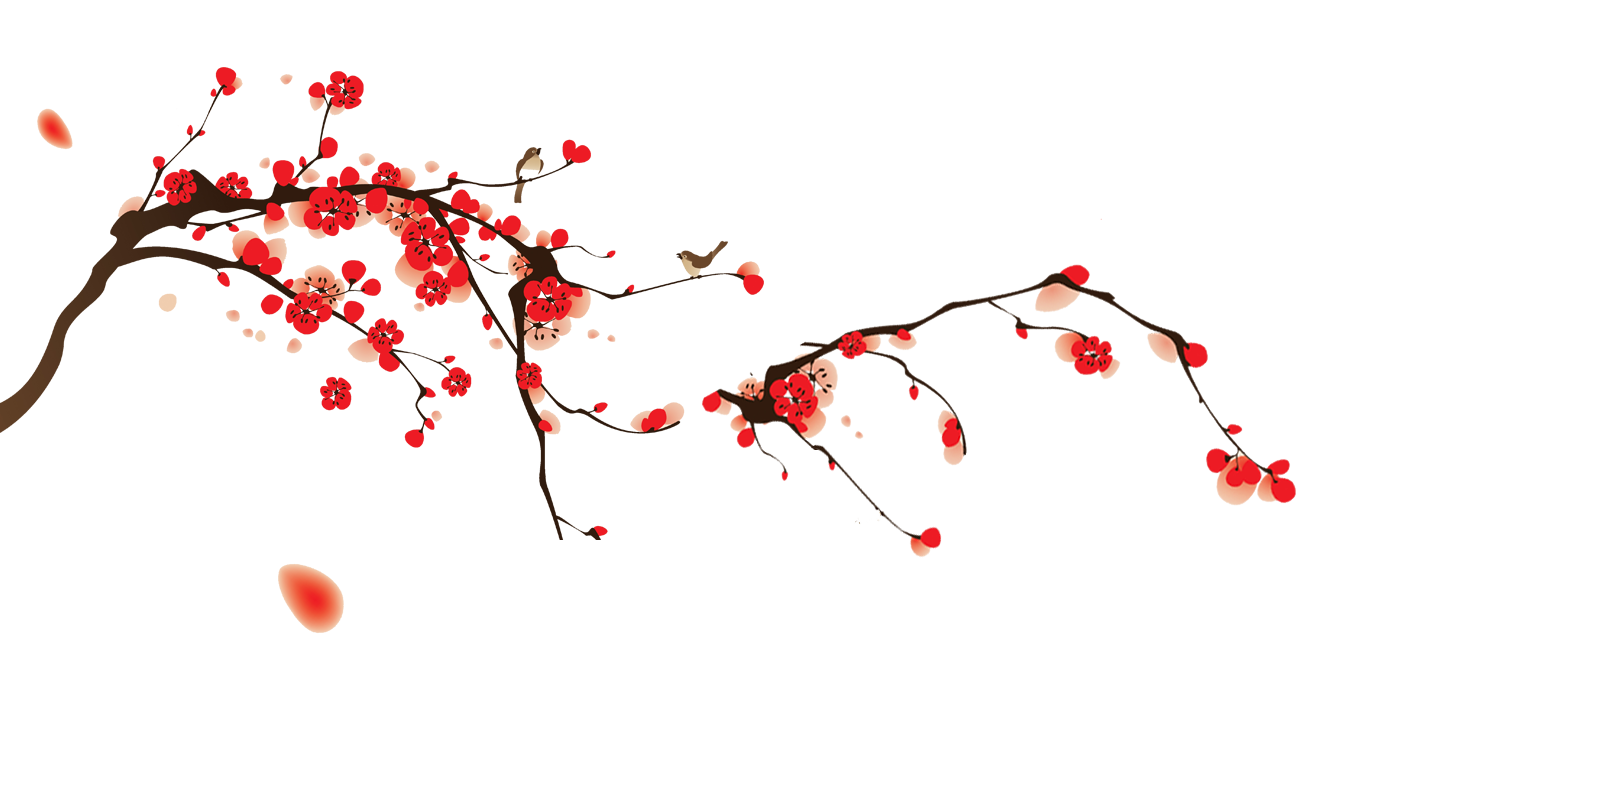 Japanese cherry blossom png. Image tumblr static blossoms